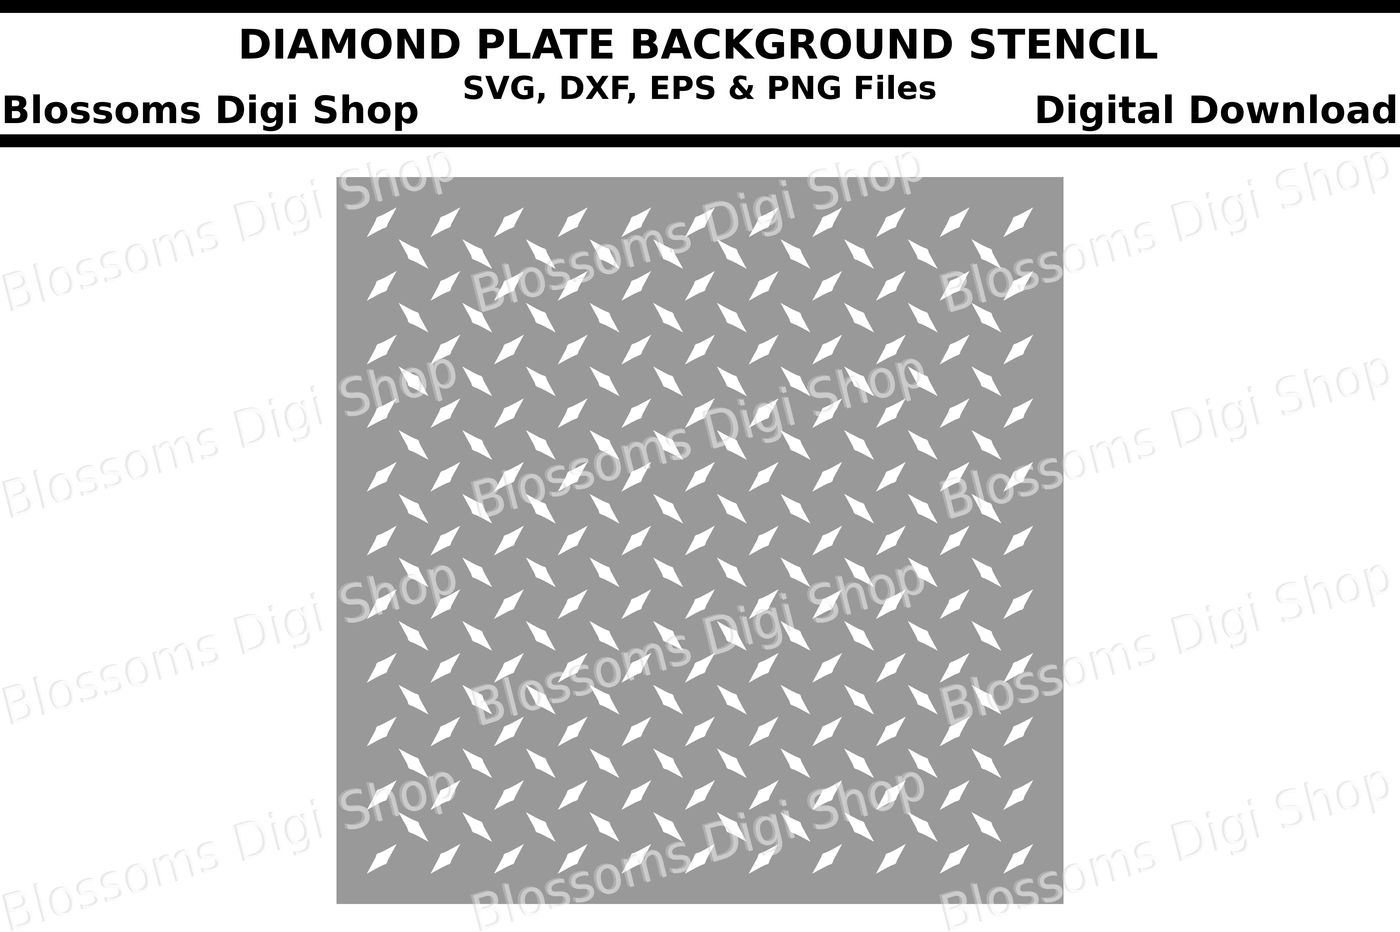 Diamond Plate Background Stencil Svg Dxf Eps And Png Files By Blossoms Digi Shop Thehungryjpeg Com